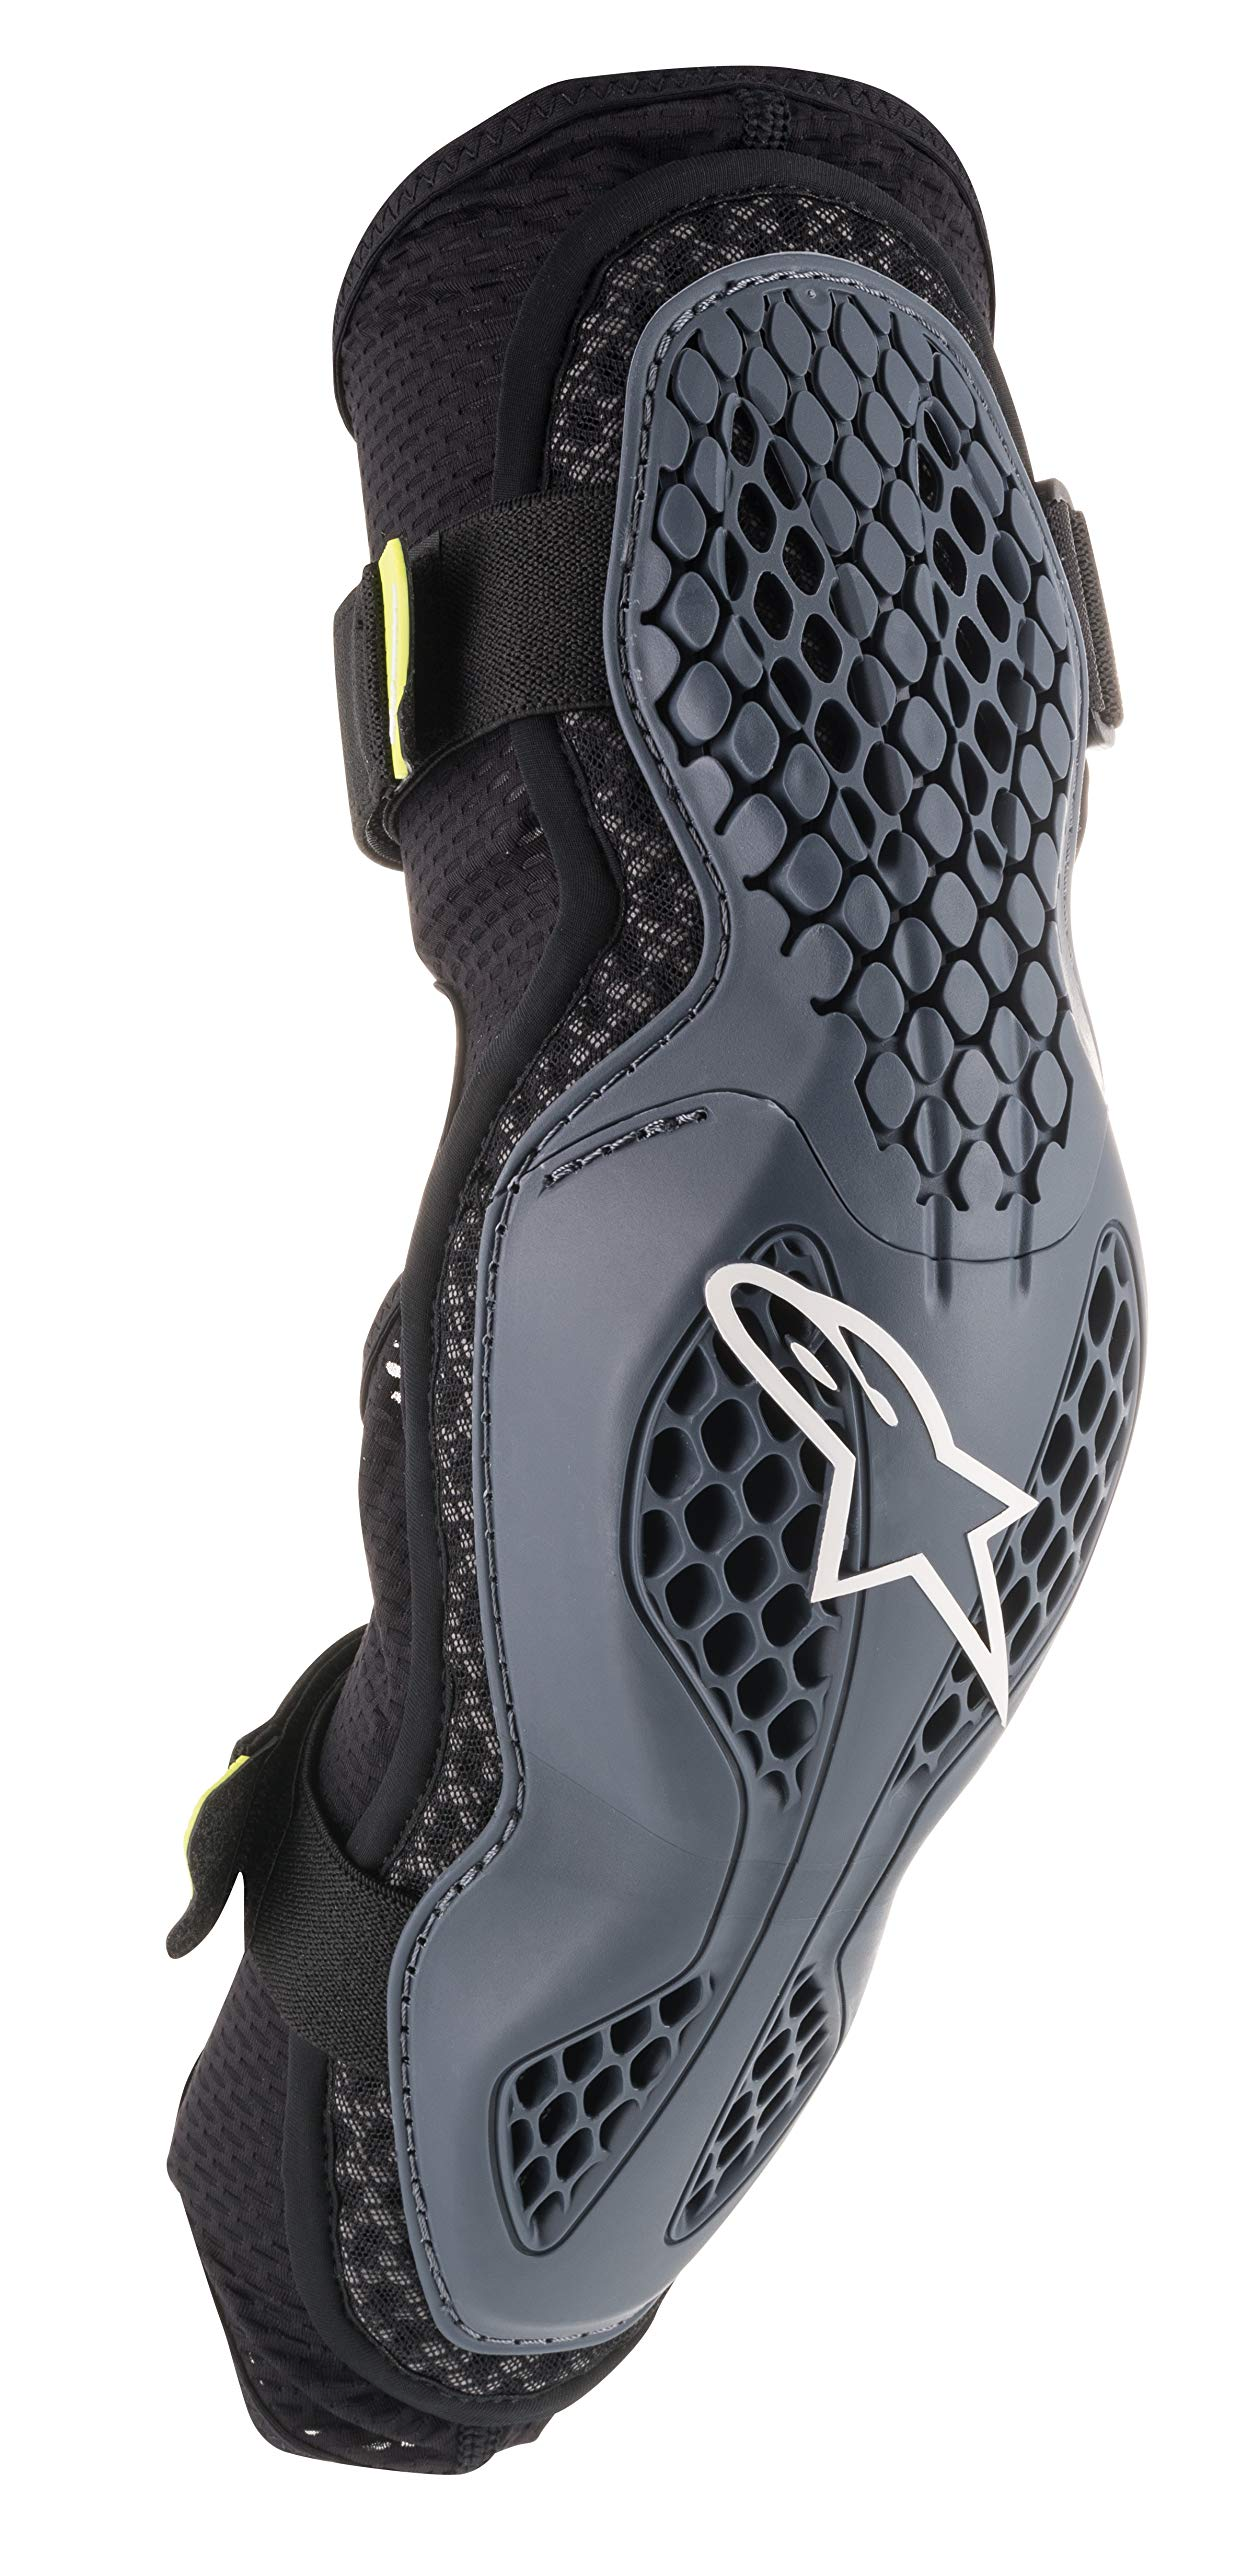 Sequence Off-Road Elbow Protector (Small/Medium, Anthracite Fluo Yellow)